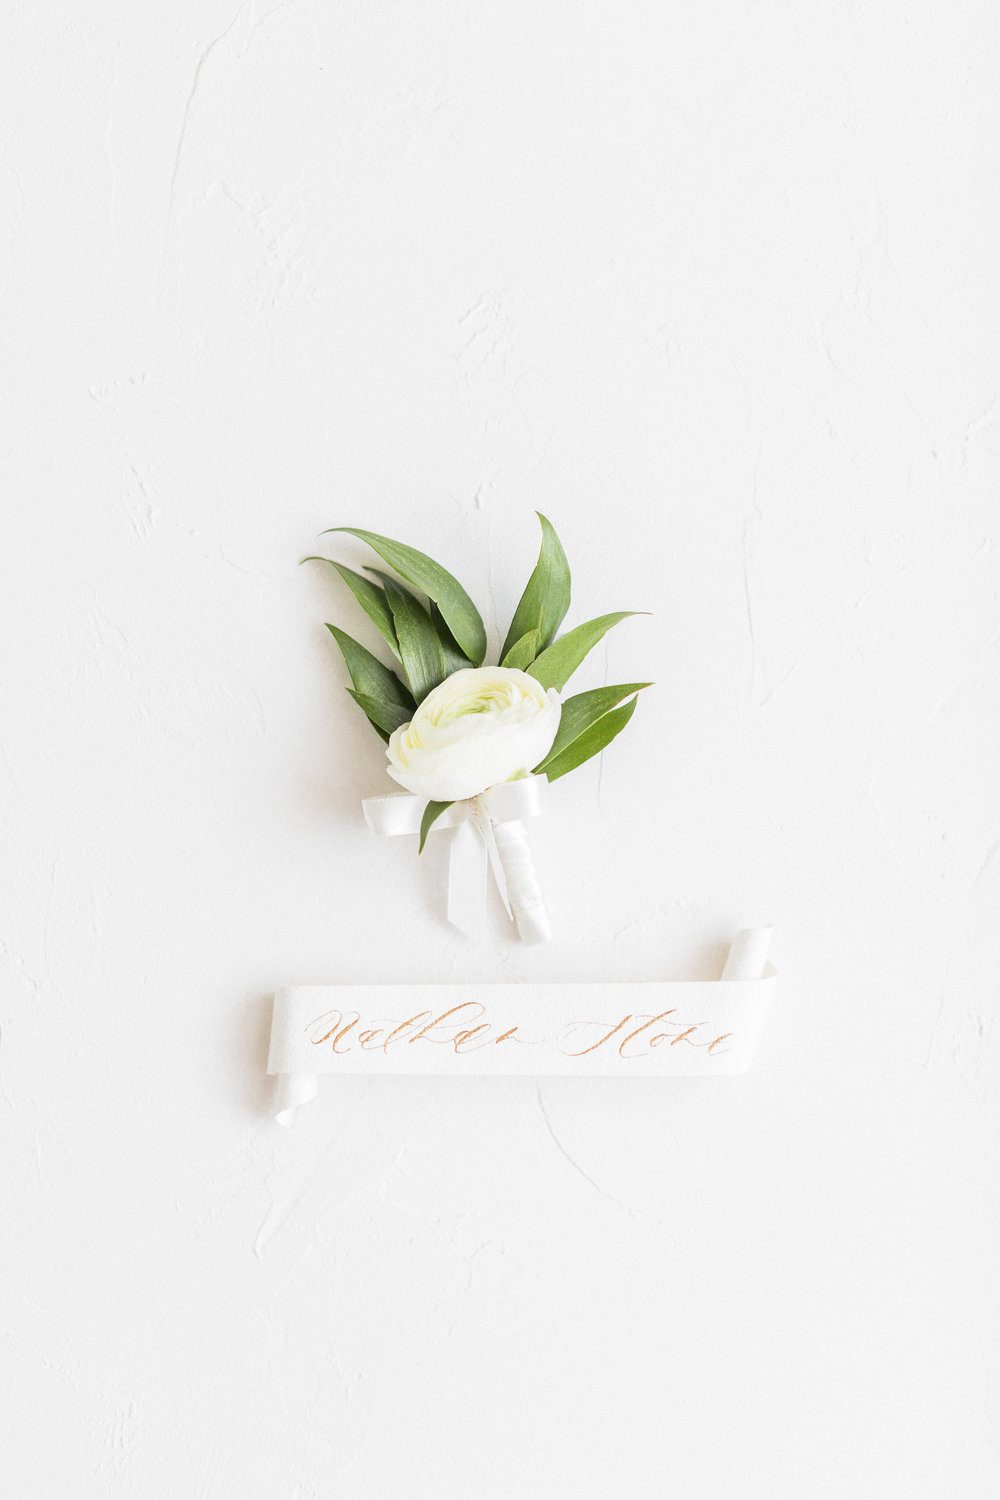 Scrolled Place Card with Gold Calligraphy by Locust House Fine Stationery